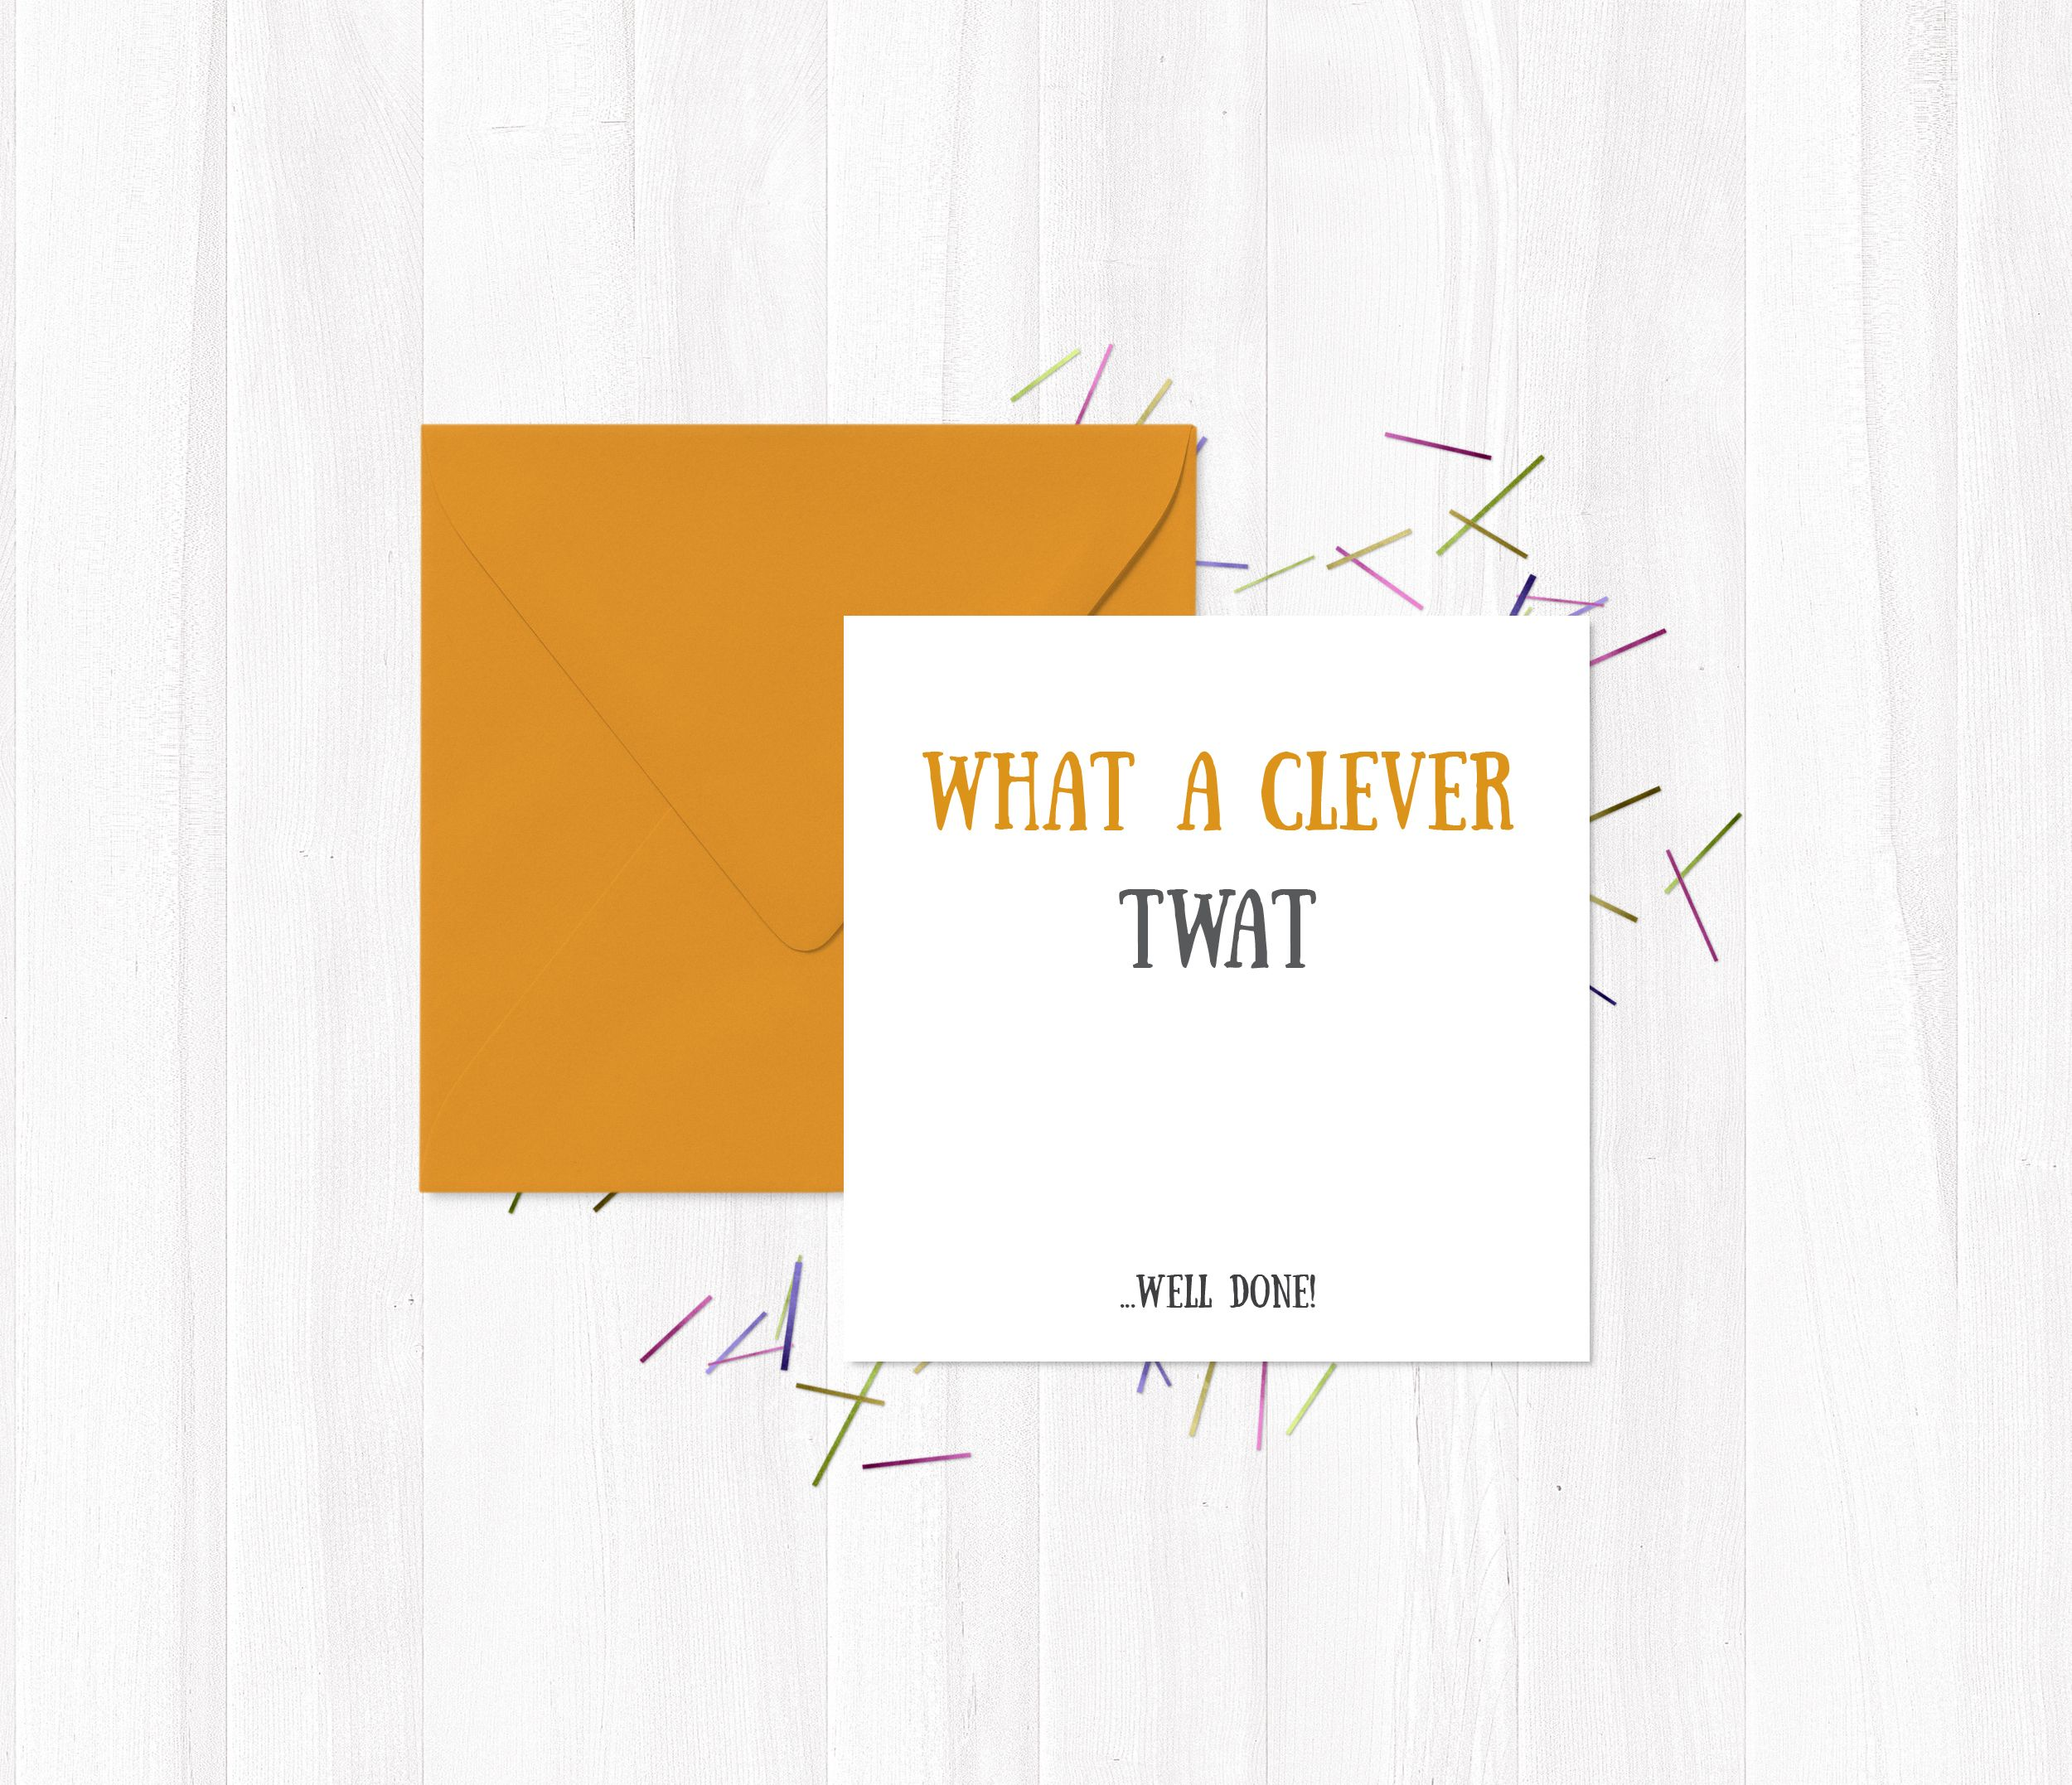 Funny greetings cards what a clever twat congratulations funny greetings cards what a clever twat congratulations kristyandbryce Image collections